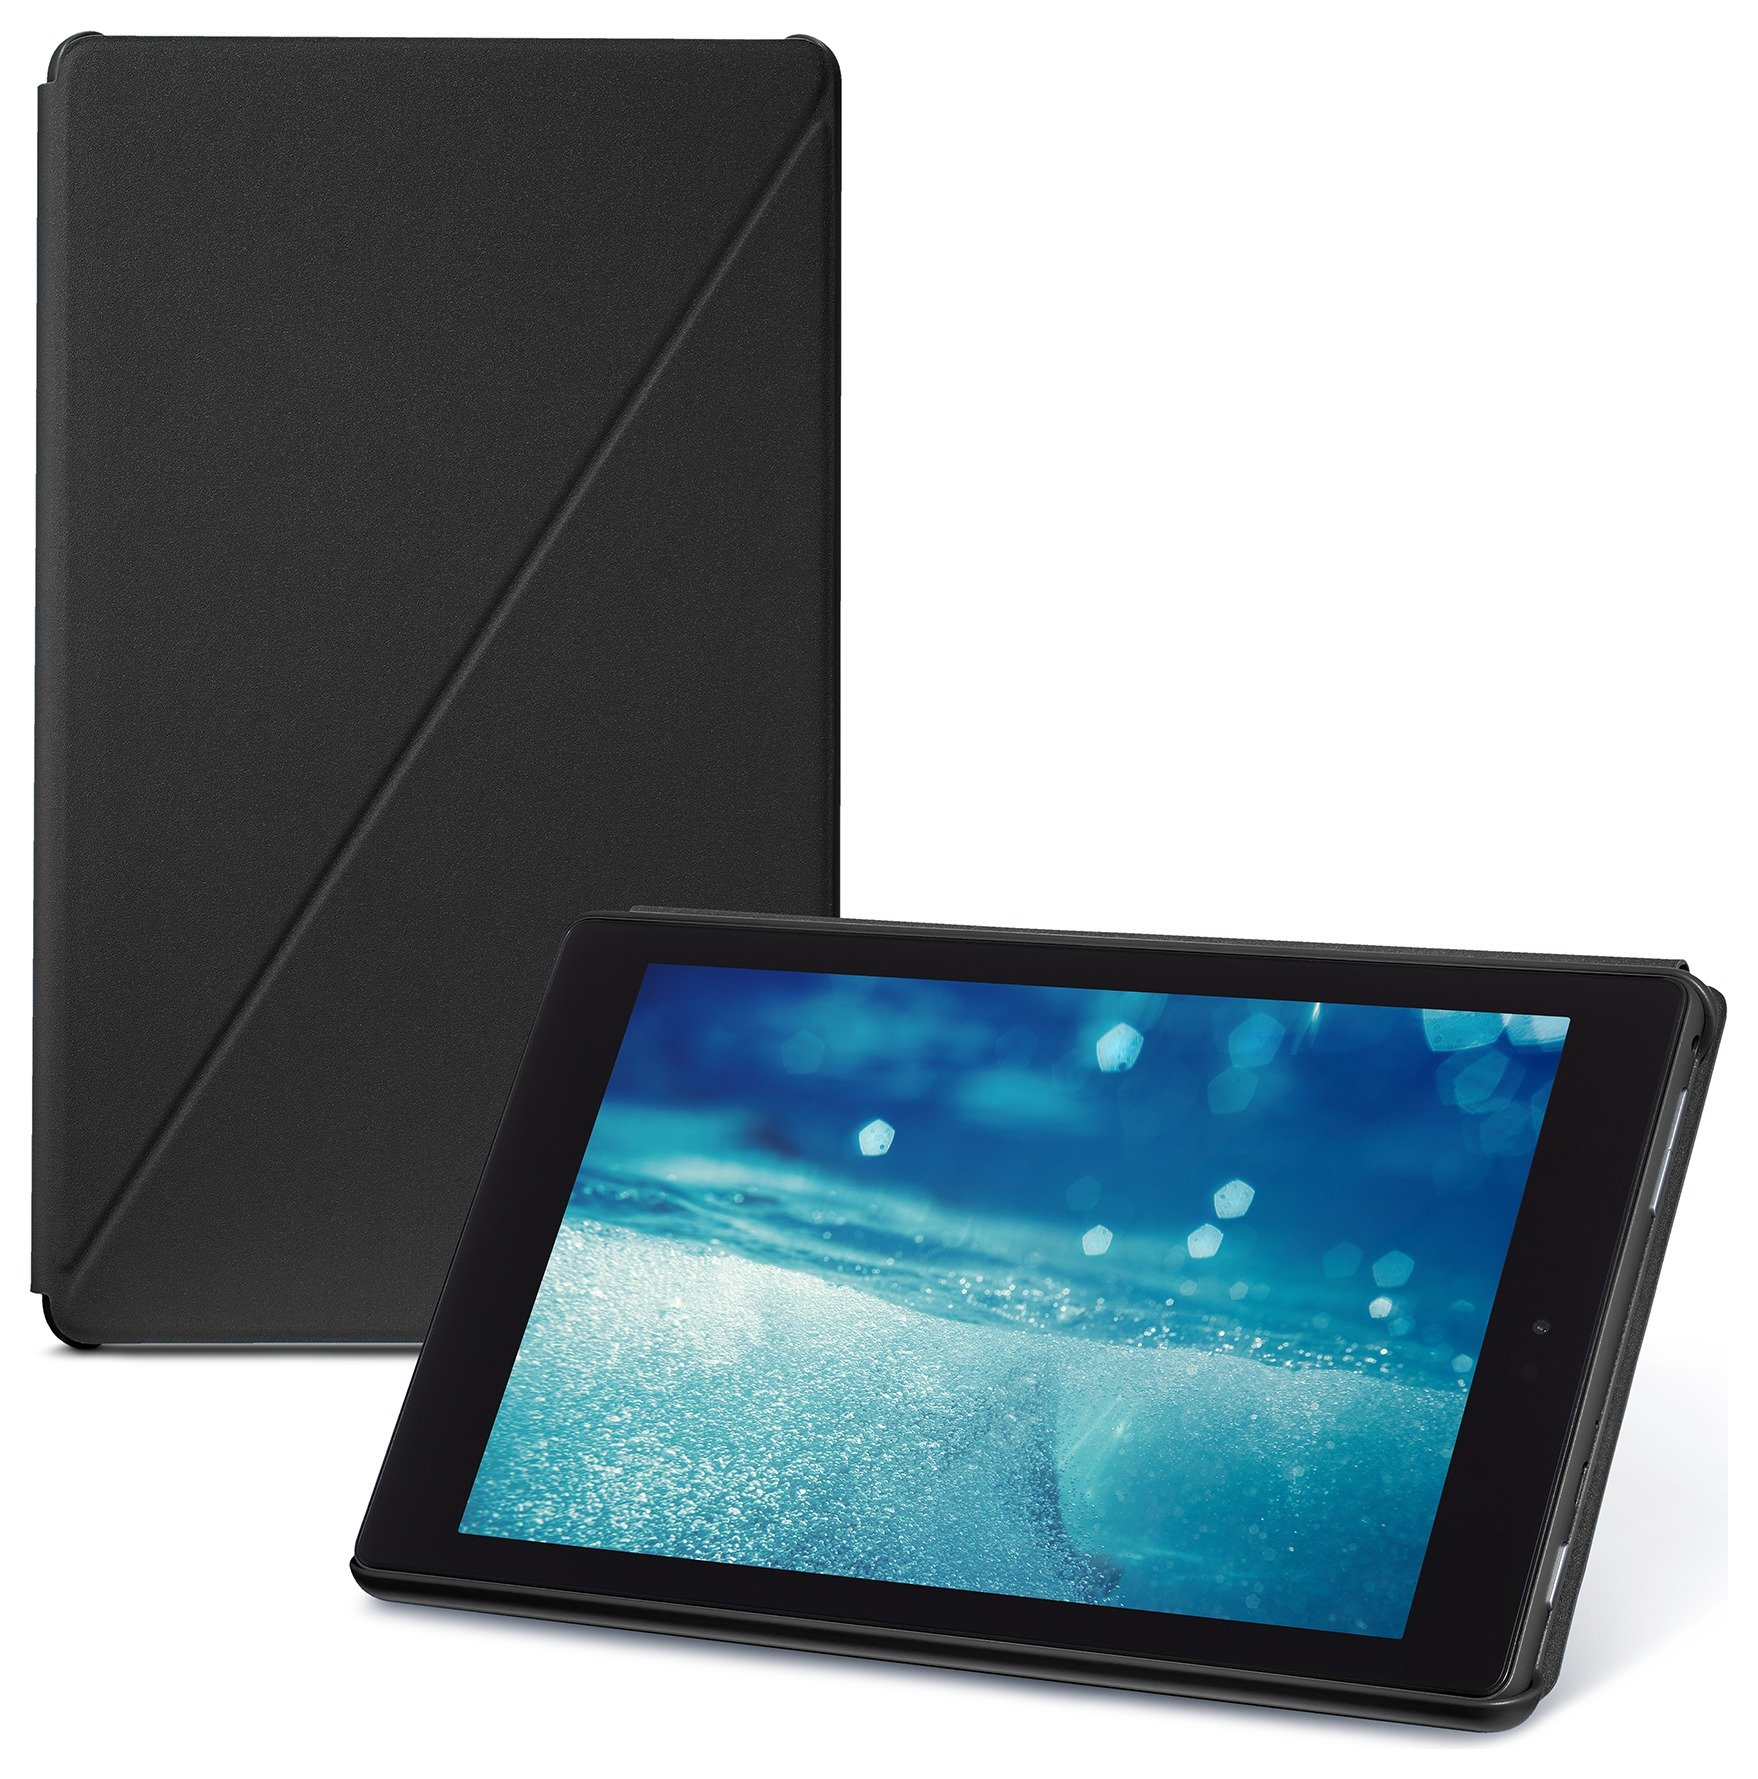 Image of Amazon Fire 8 Inch Tablet Case - Black